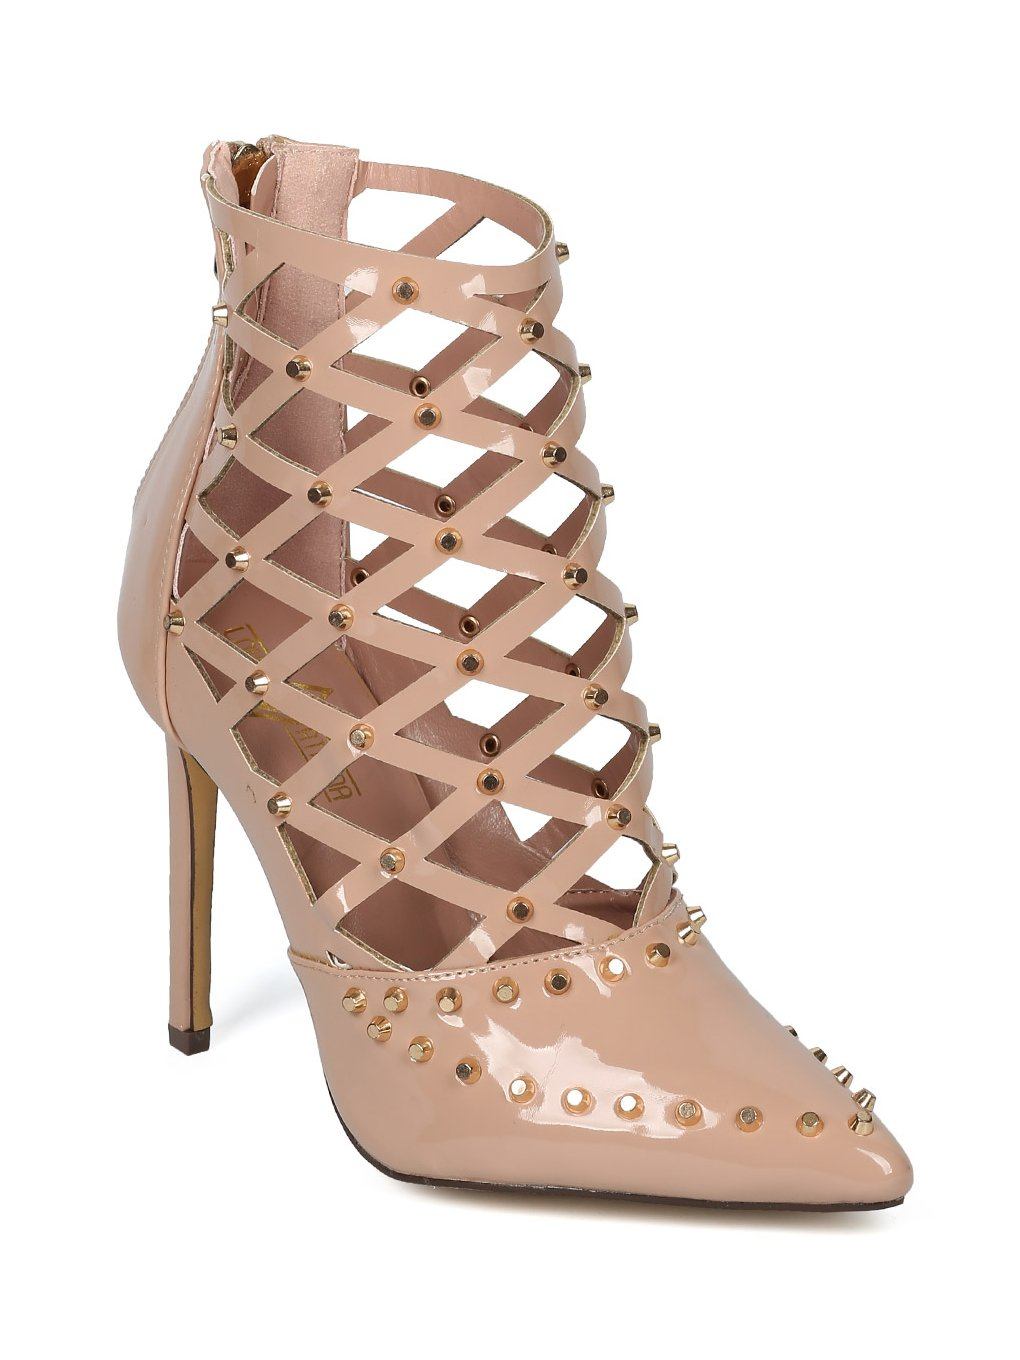 Alrisco Women Studded Pointy Toe Caged Cut Out Stiletto Bootie Pump HF45 - Nude Patent (Size: 6.0) by Alrisco (Image #1)